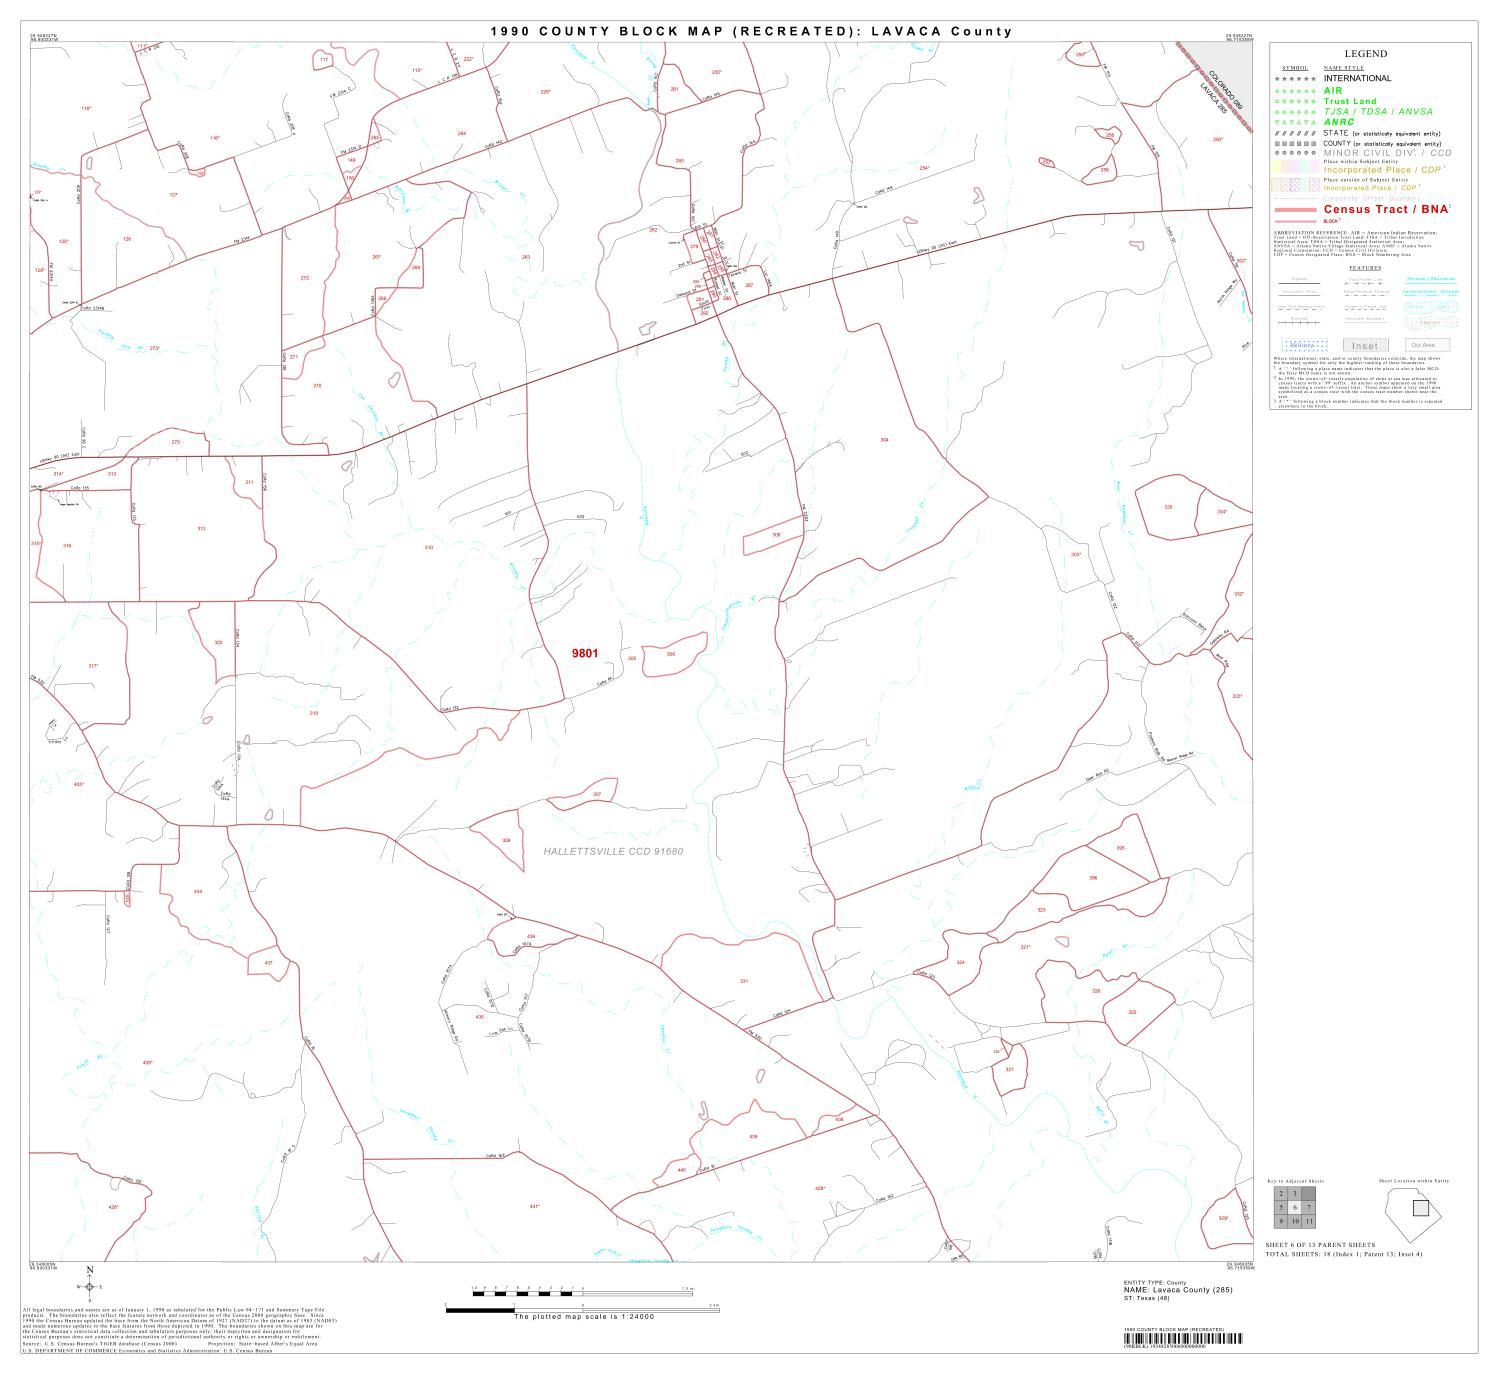 1990 Census County Block Map (Recreated): Lavaca County